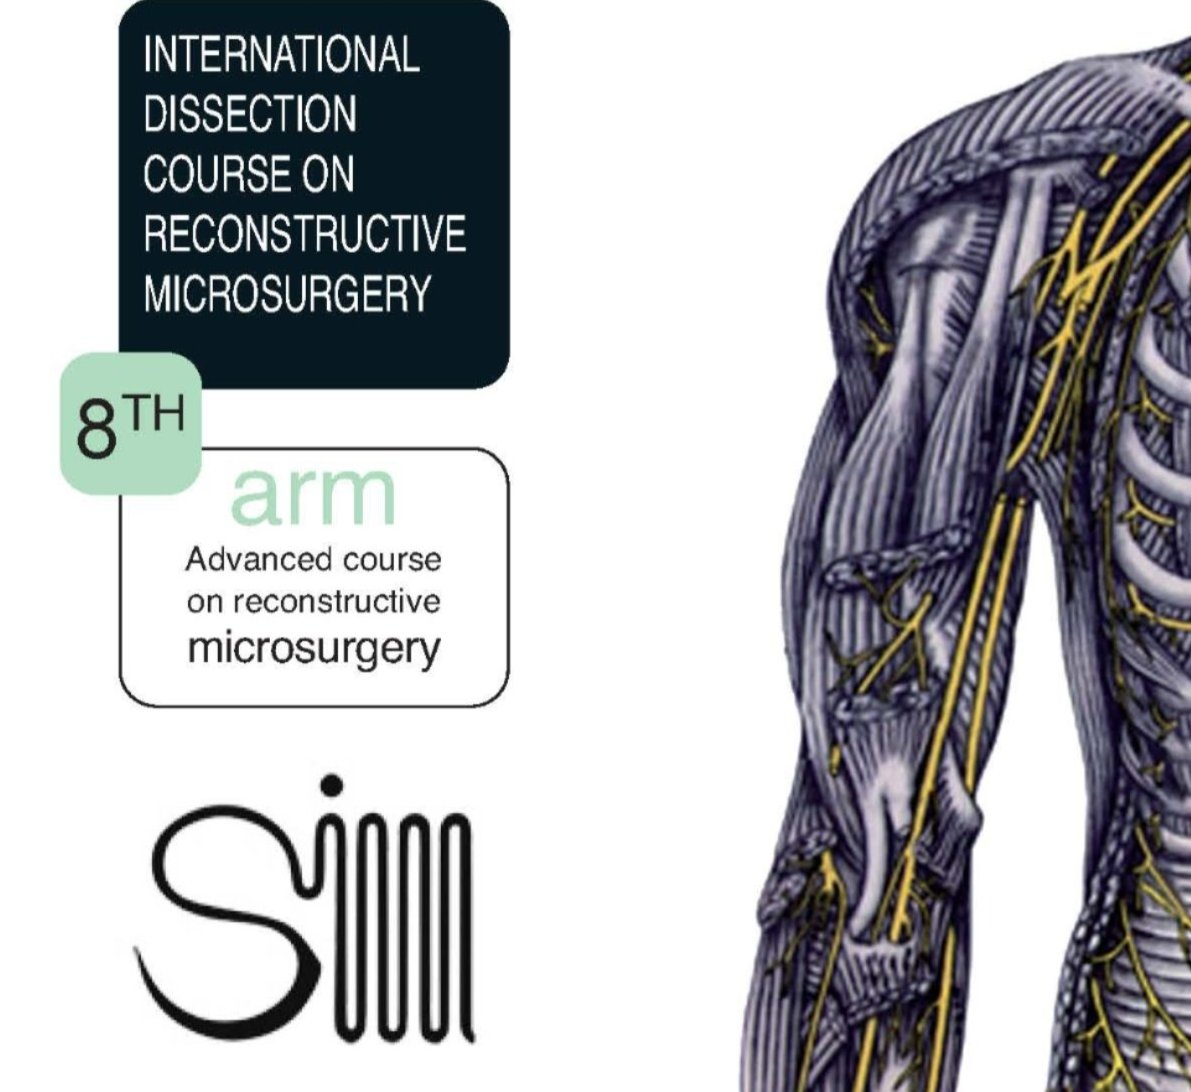 International Dissection Course on Reconstructive Microsurgery